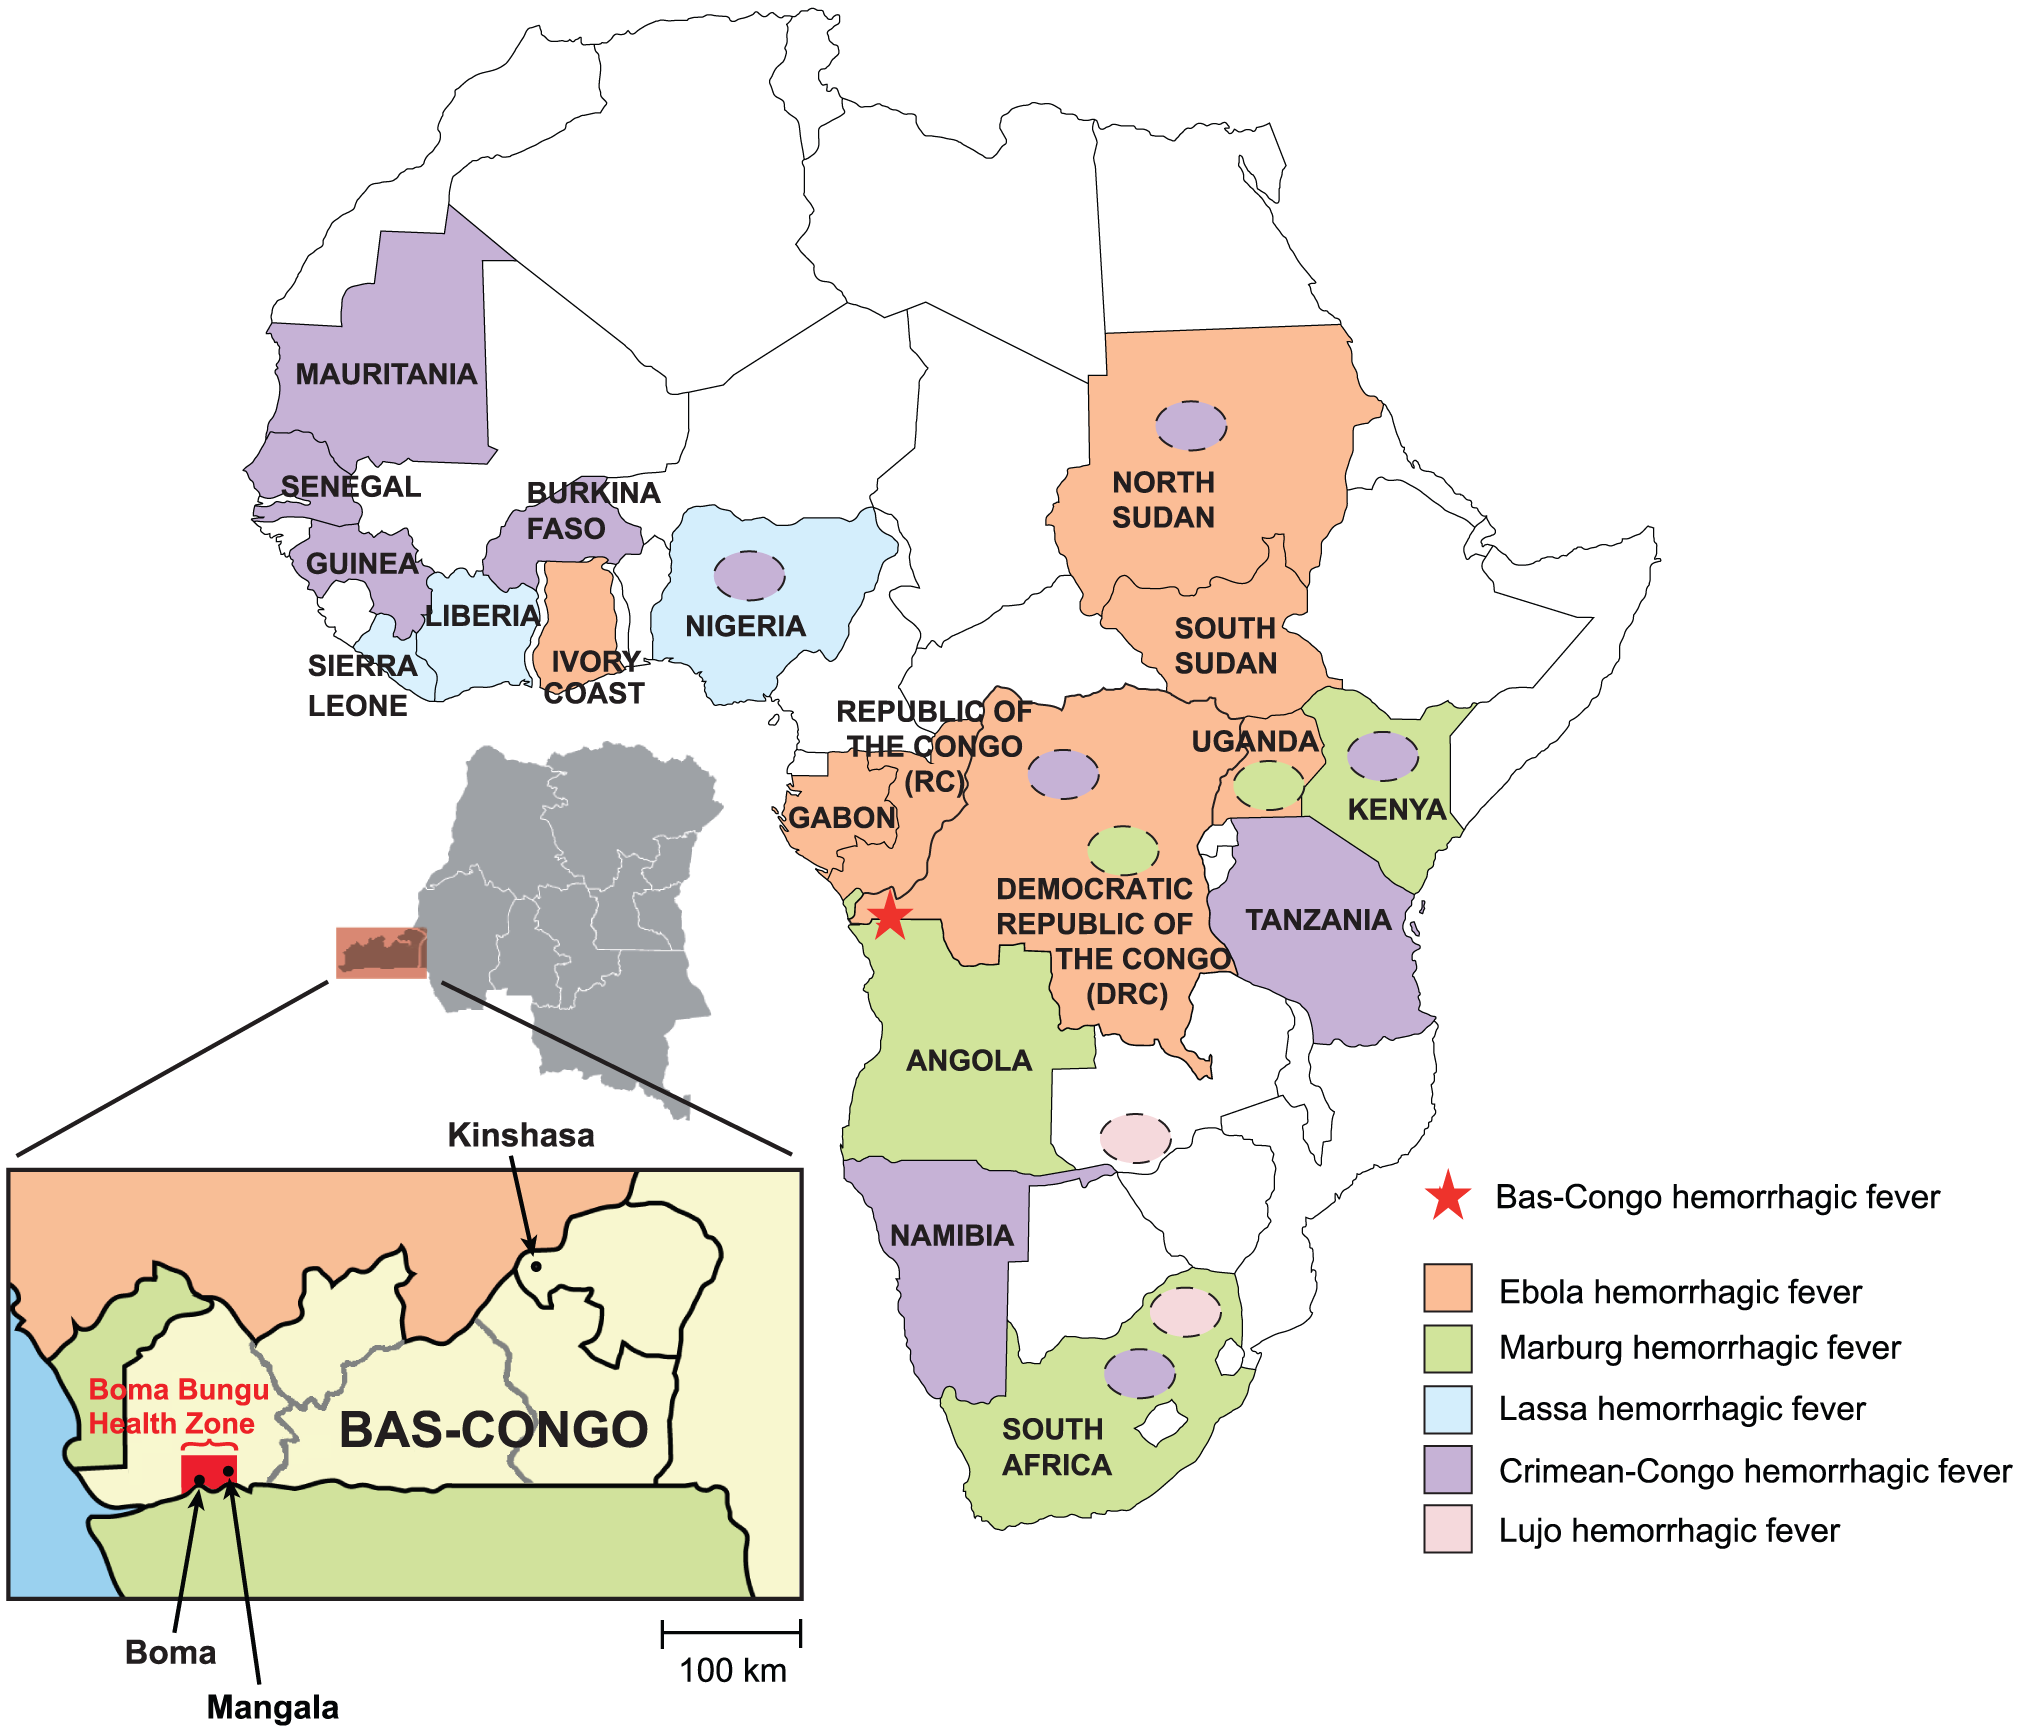 Map of Africa showing countries that are affected by viral hemorrhagic fever (VHF) outbreaks.